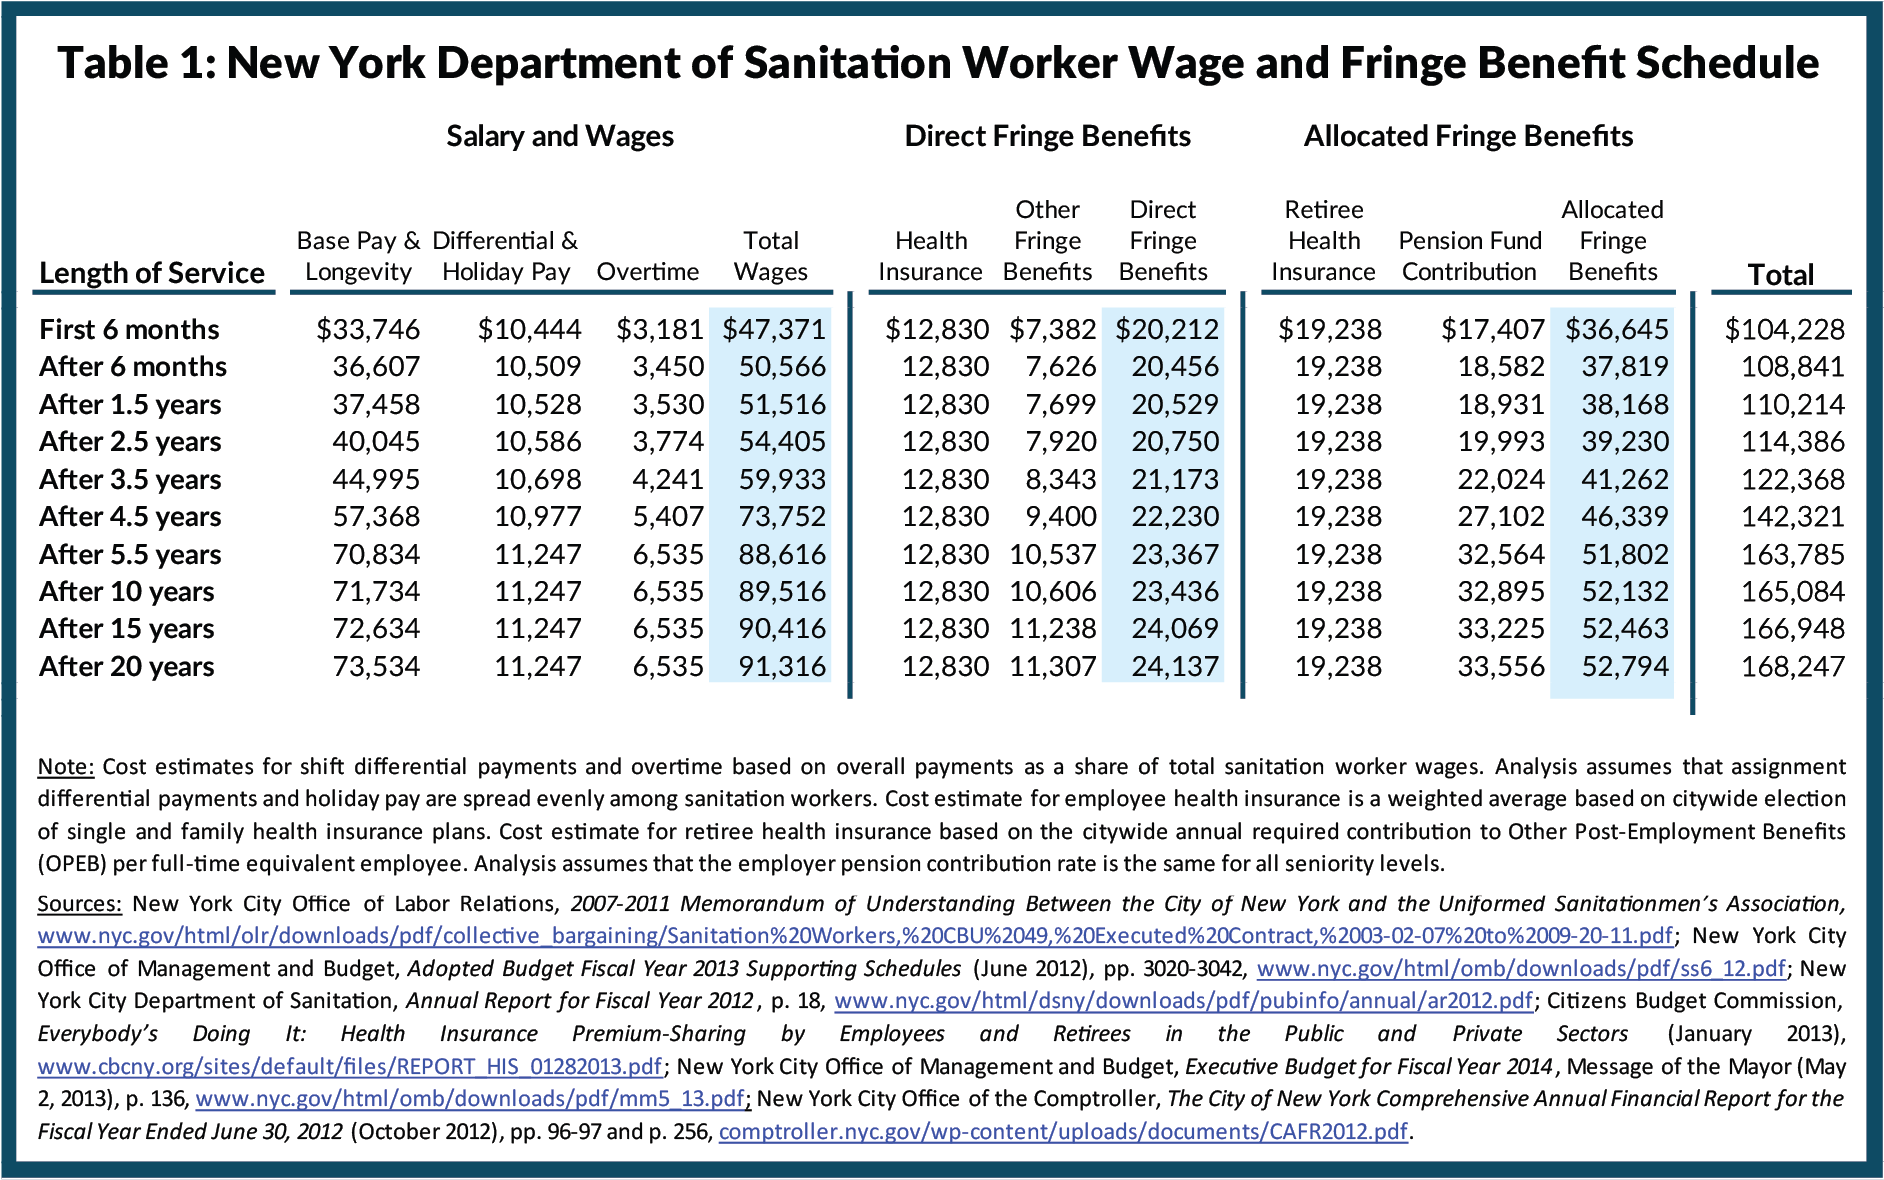 Table 1: New York Department of Sanitation Worker Wage and Fringe Benefit Schedule